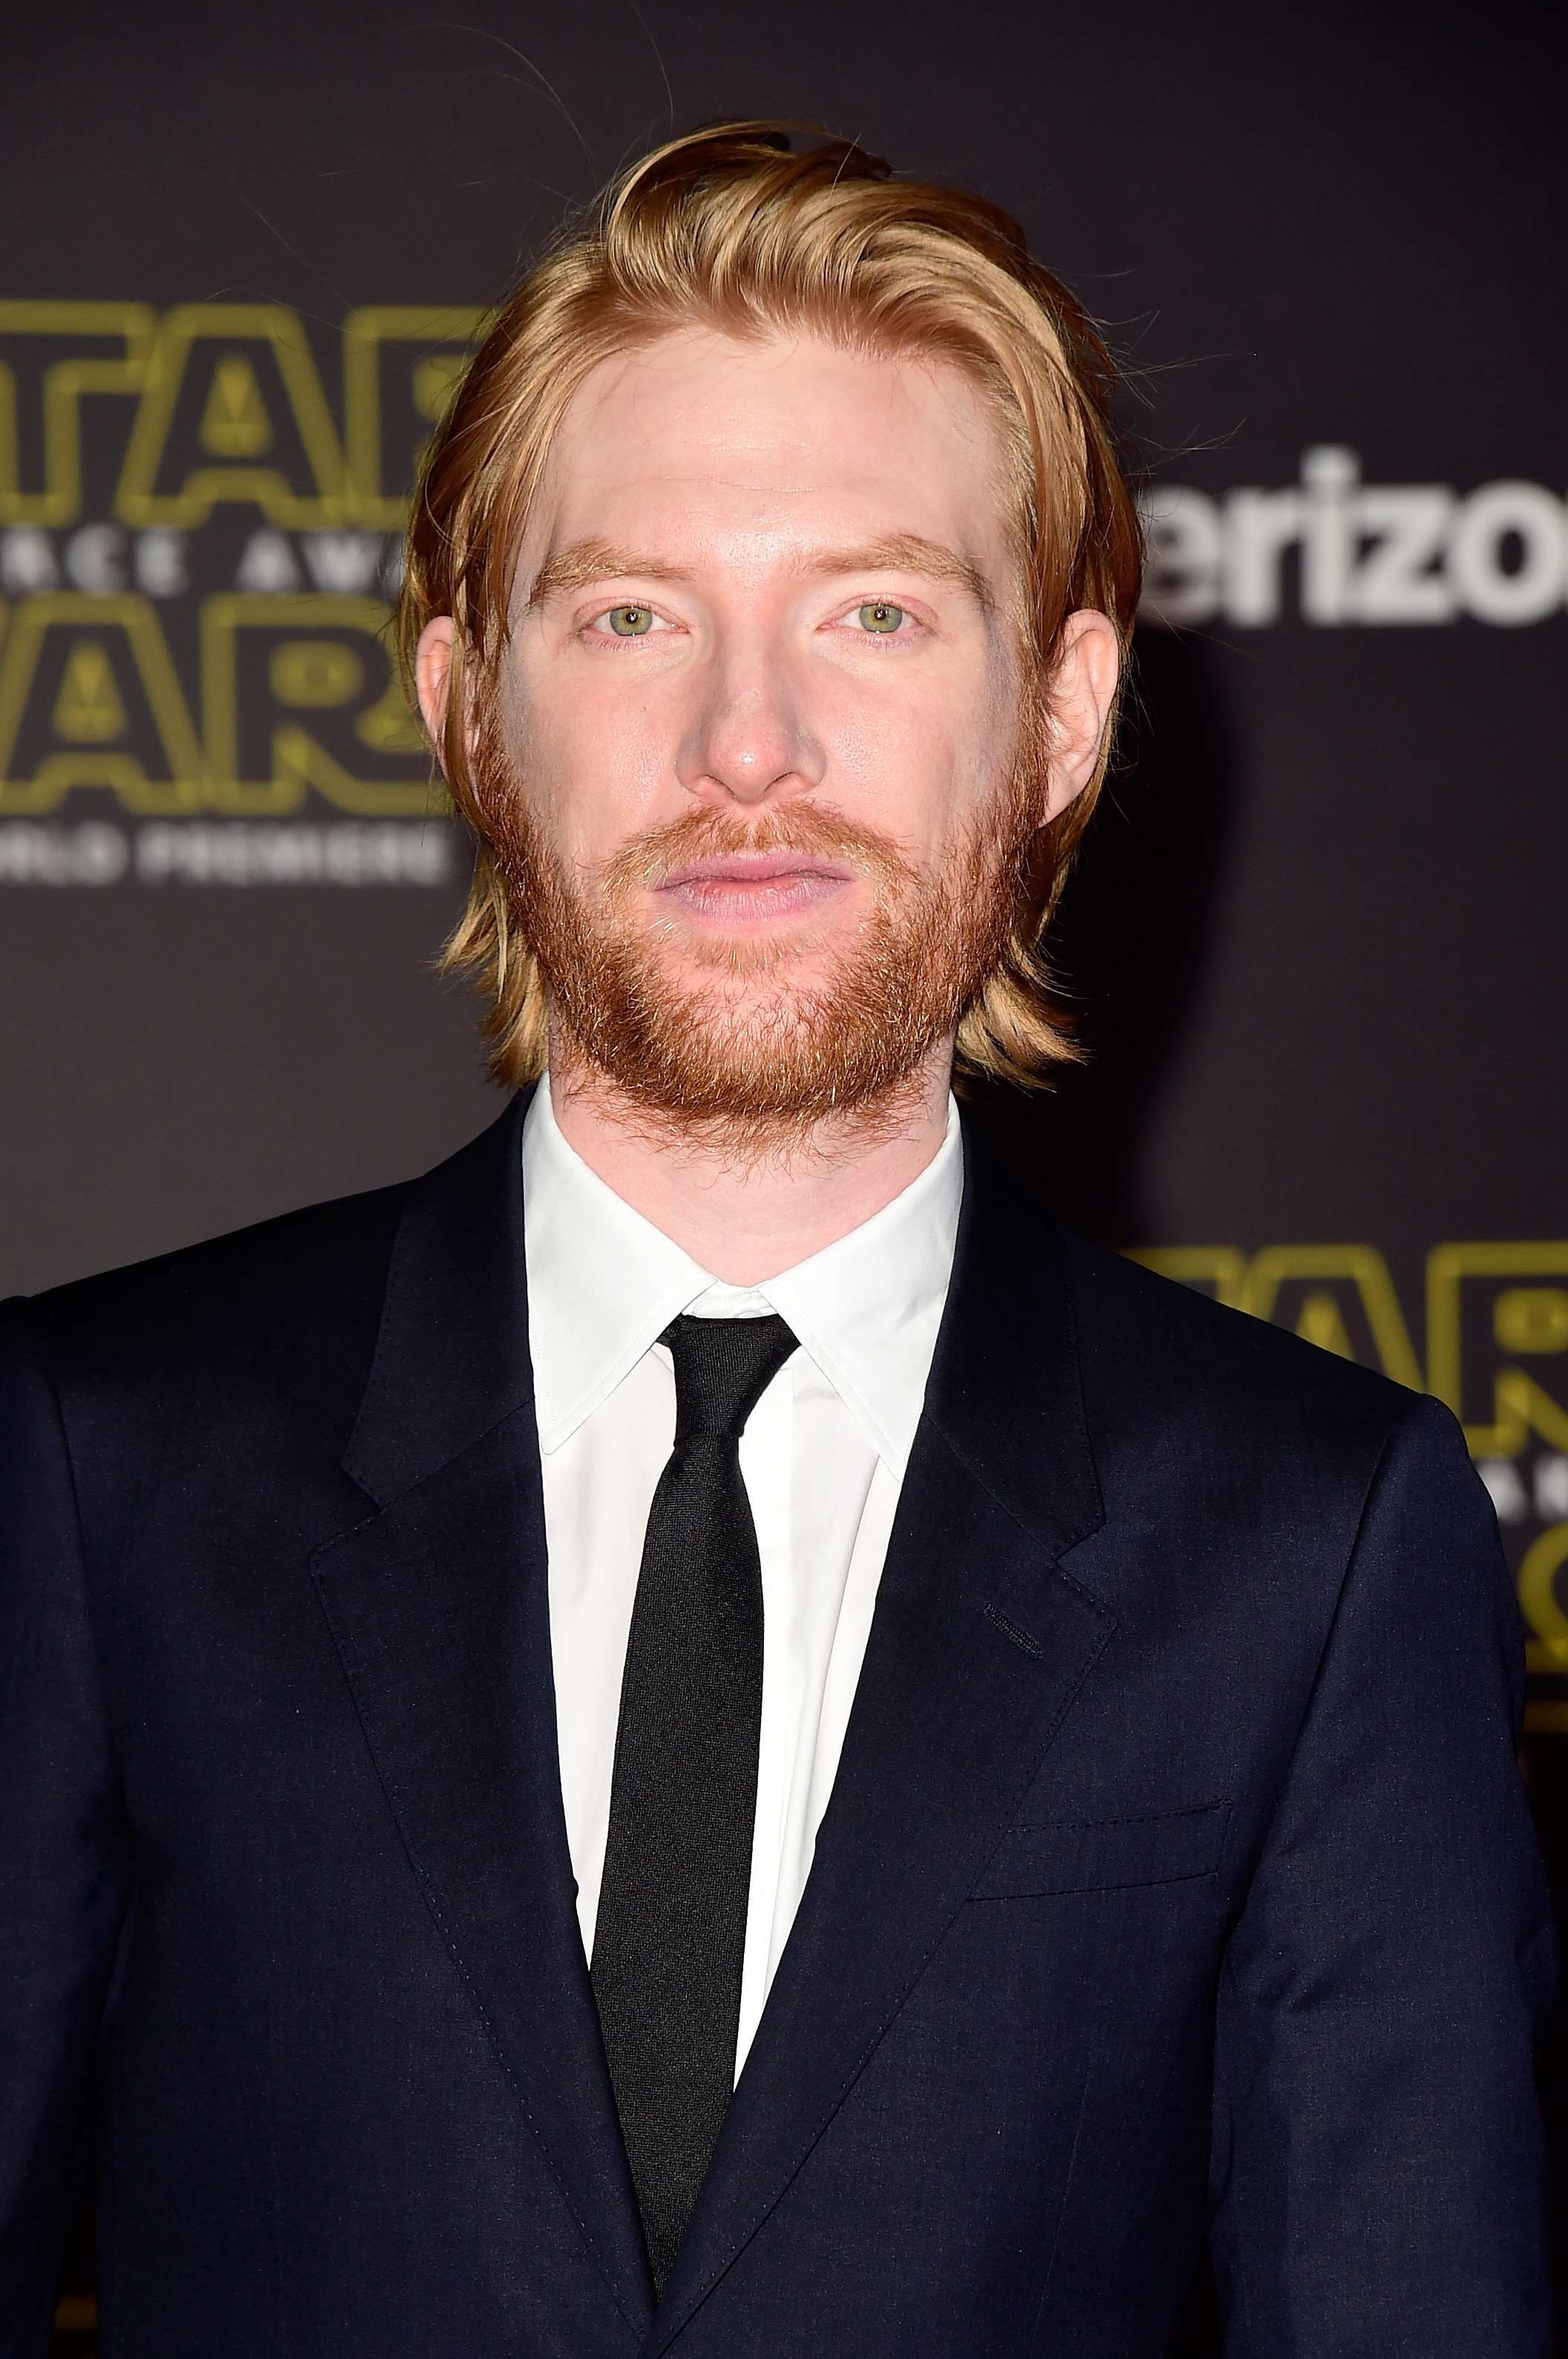 Domhnall Gleeson Is The 'Star Wars' Villain The New Film ...